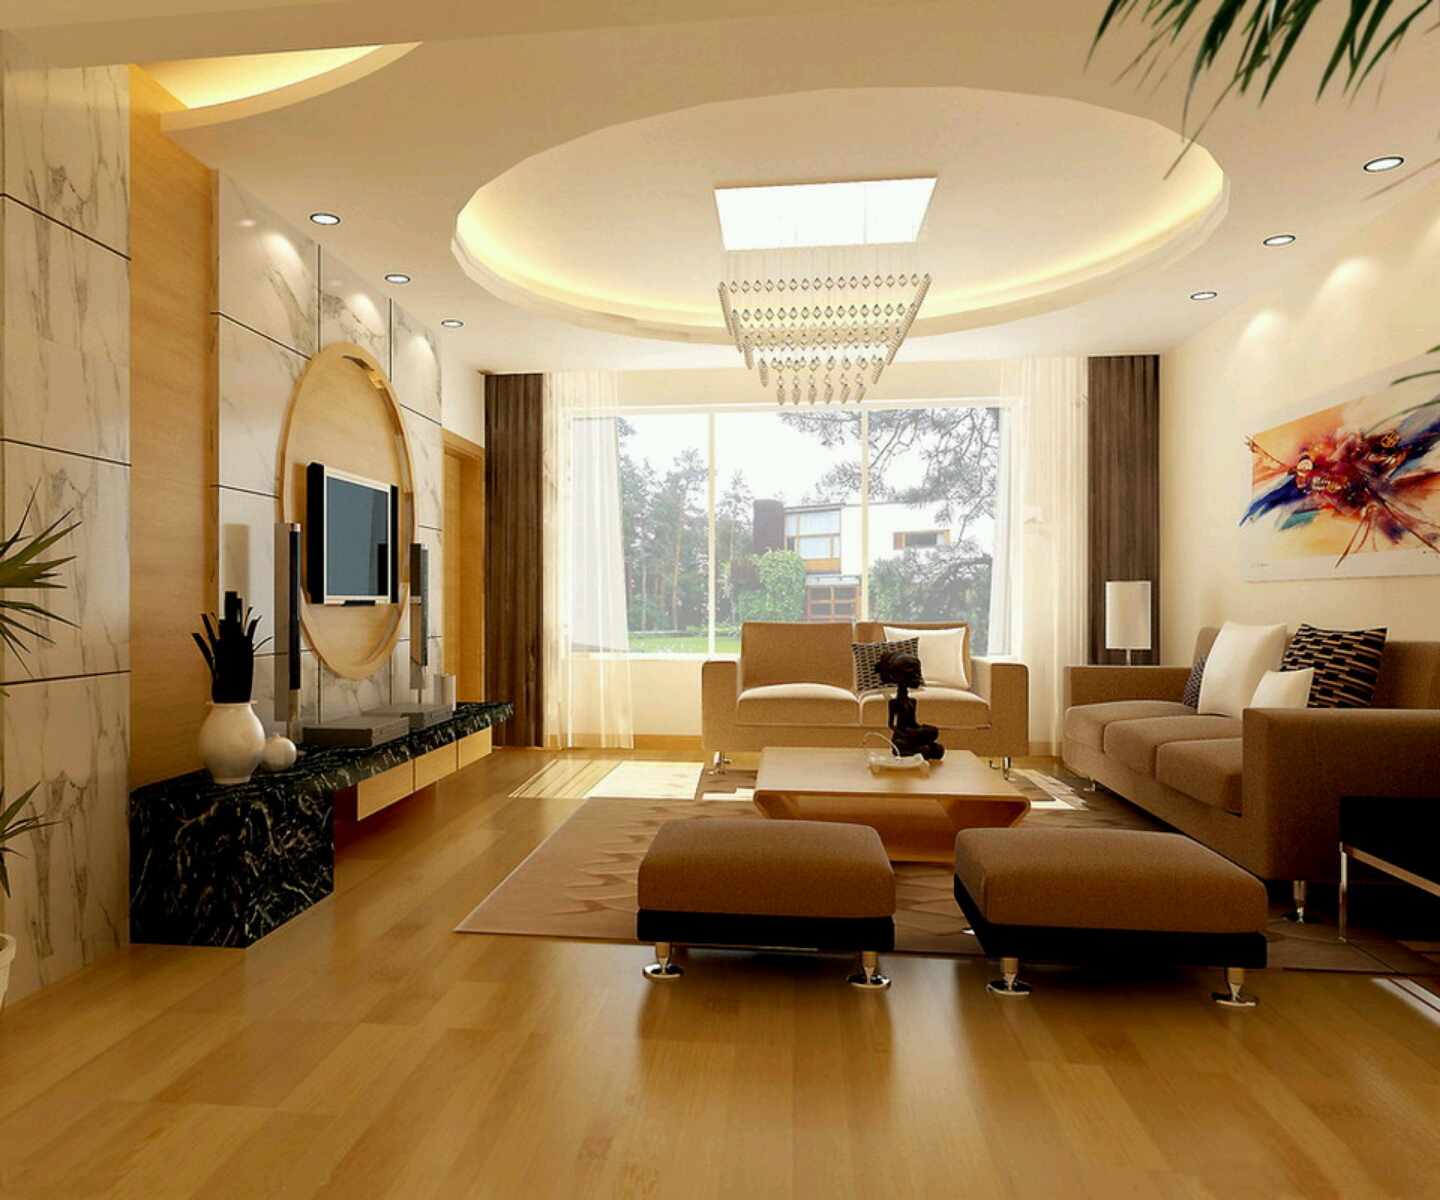 New home designs latest modern interior decoration for Interior designs living rooms